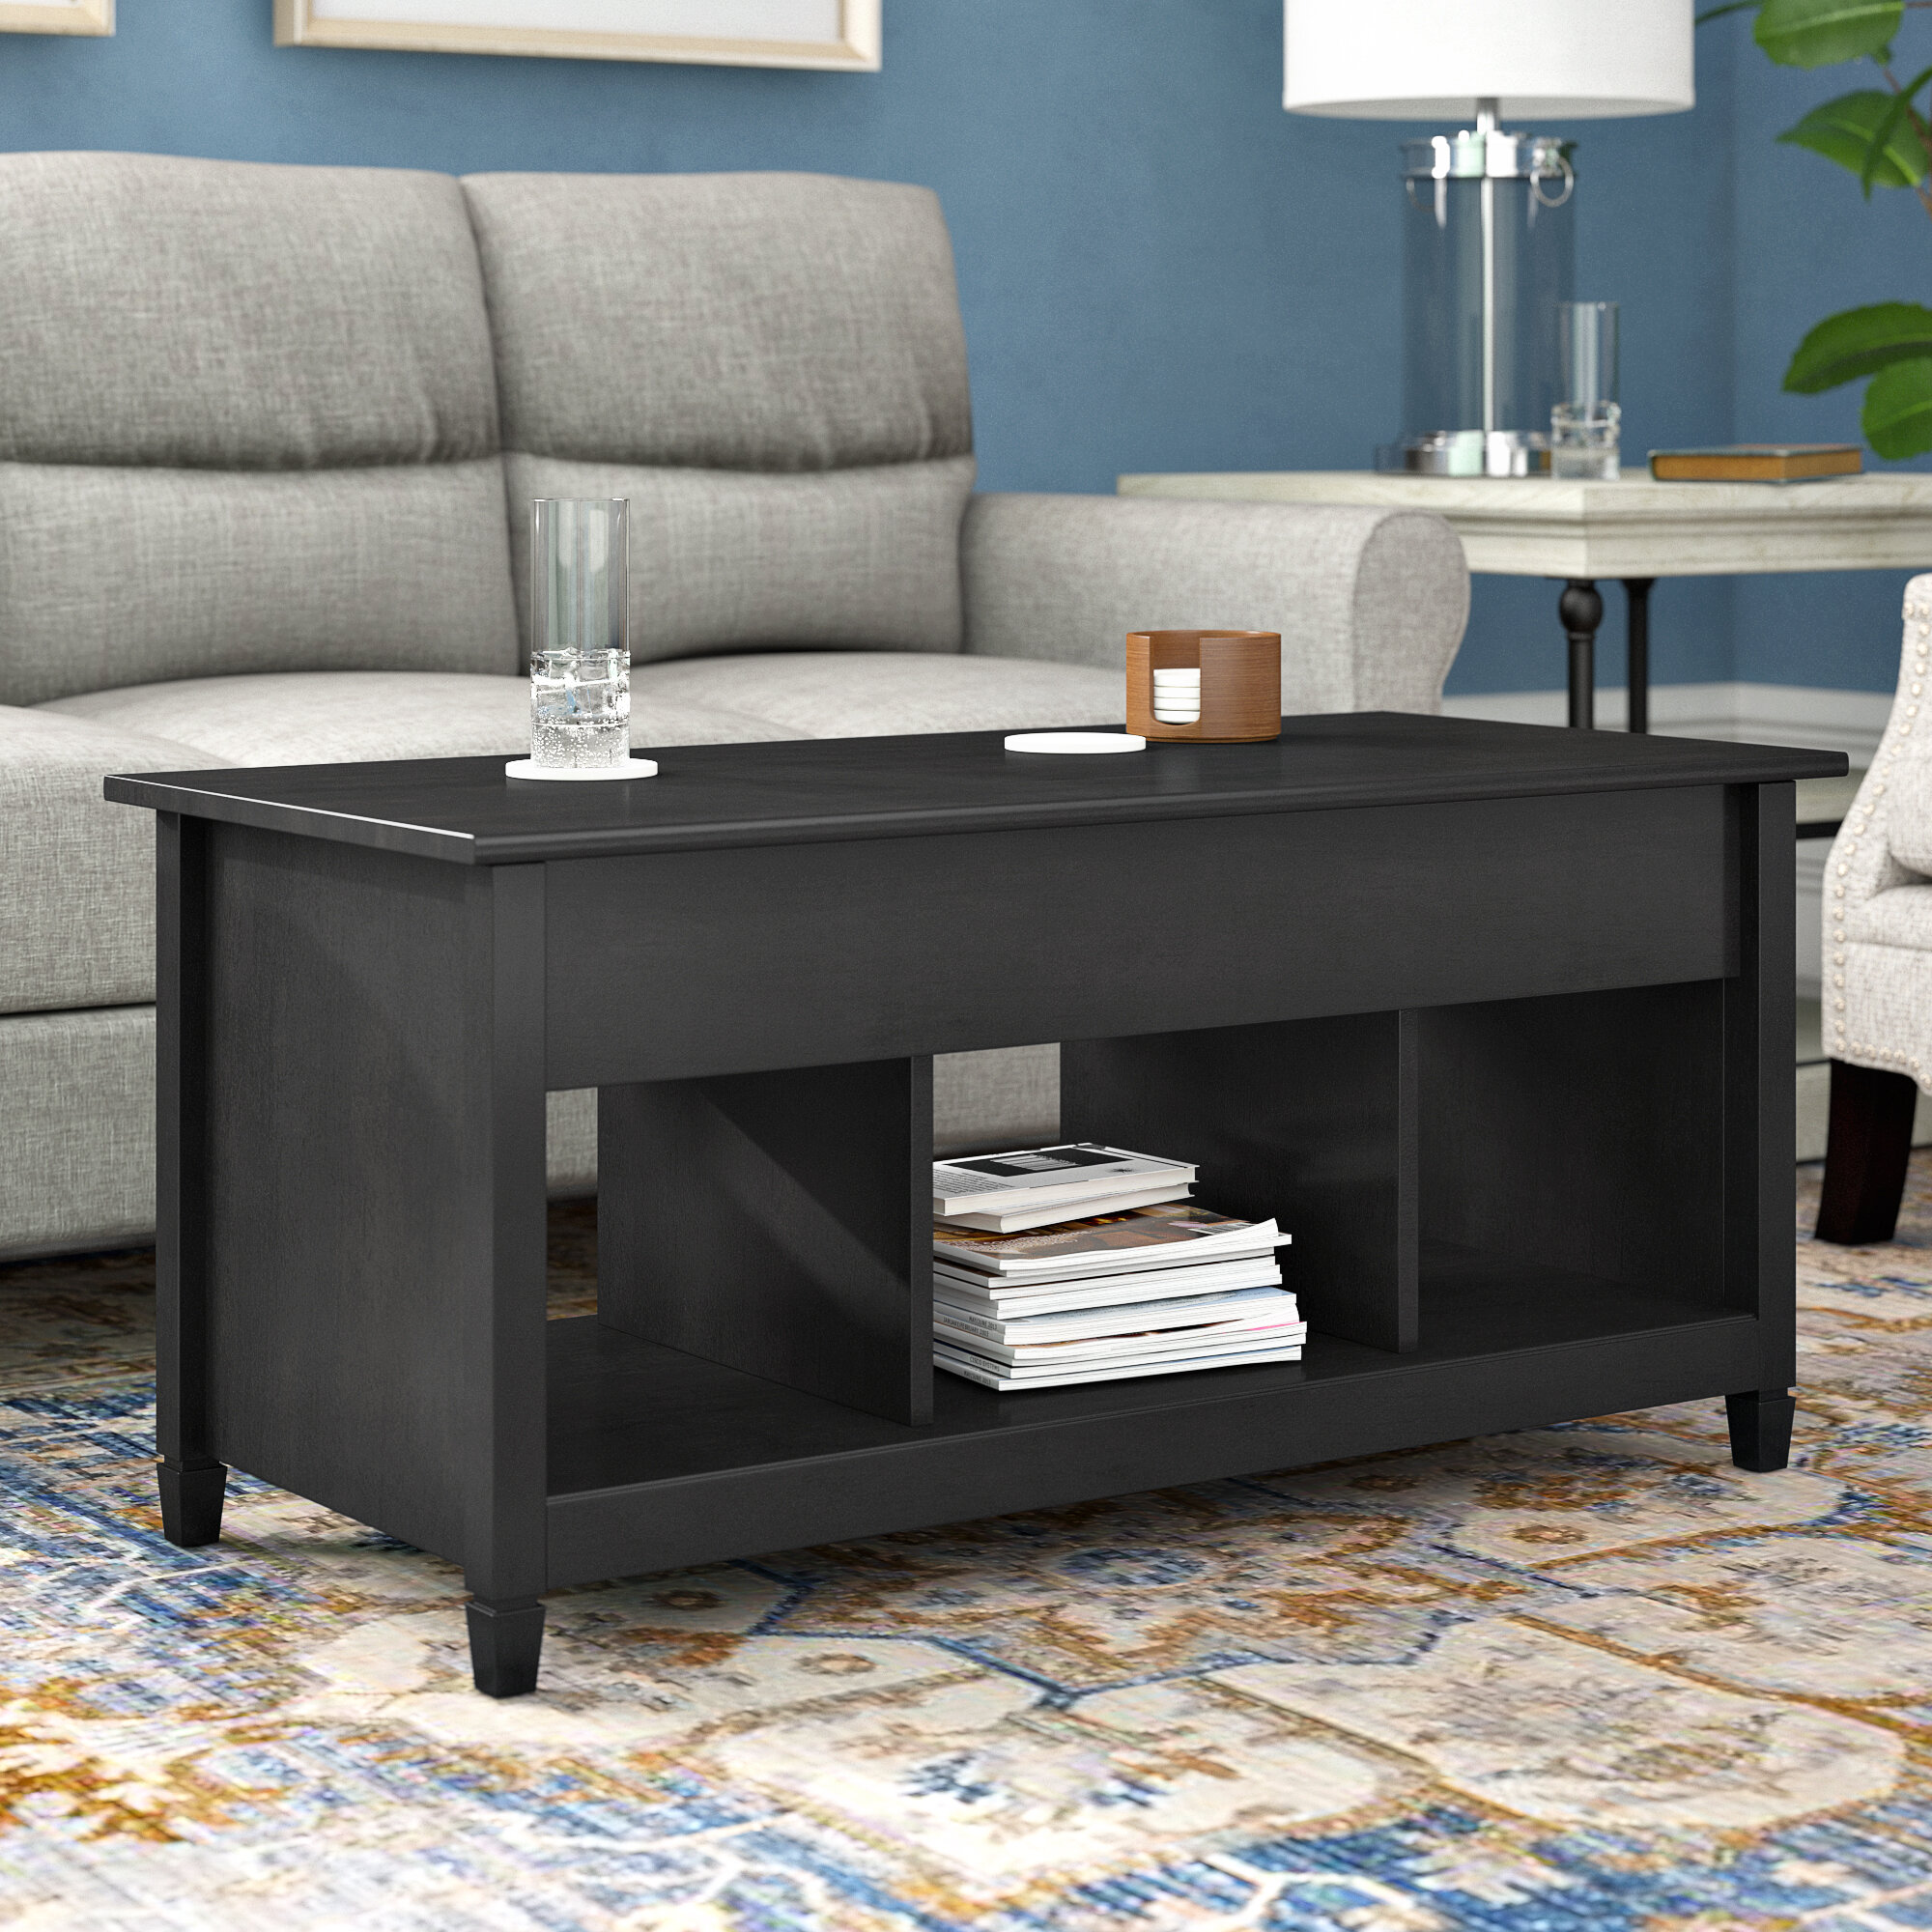 Lift Top Coffee Tables Up To 60 Off Through 12 26